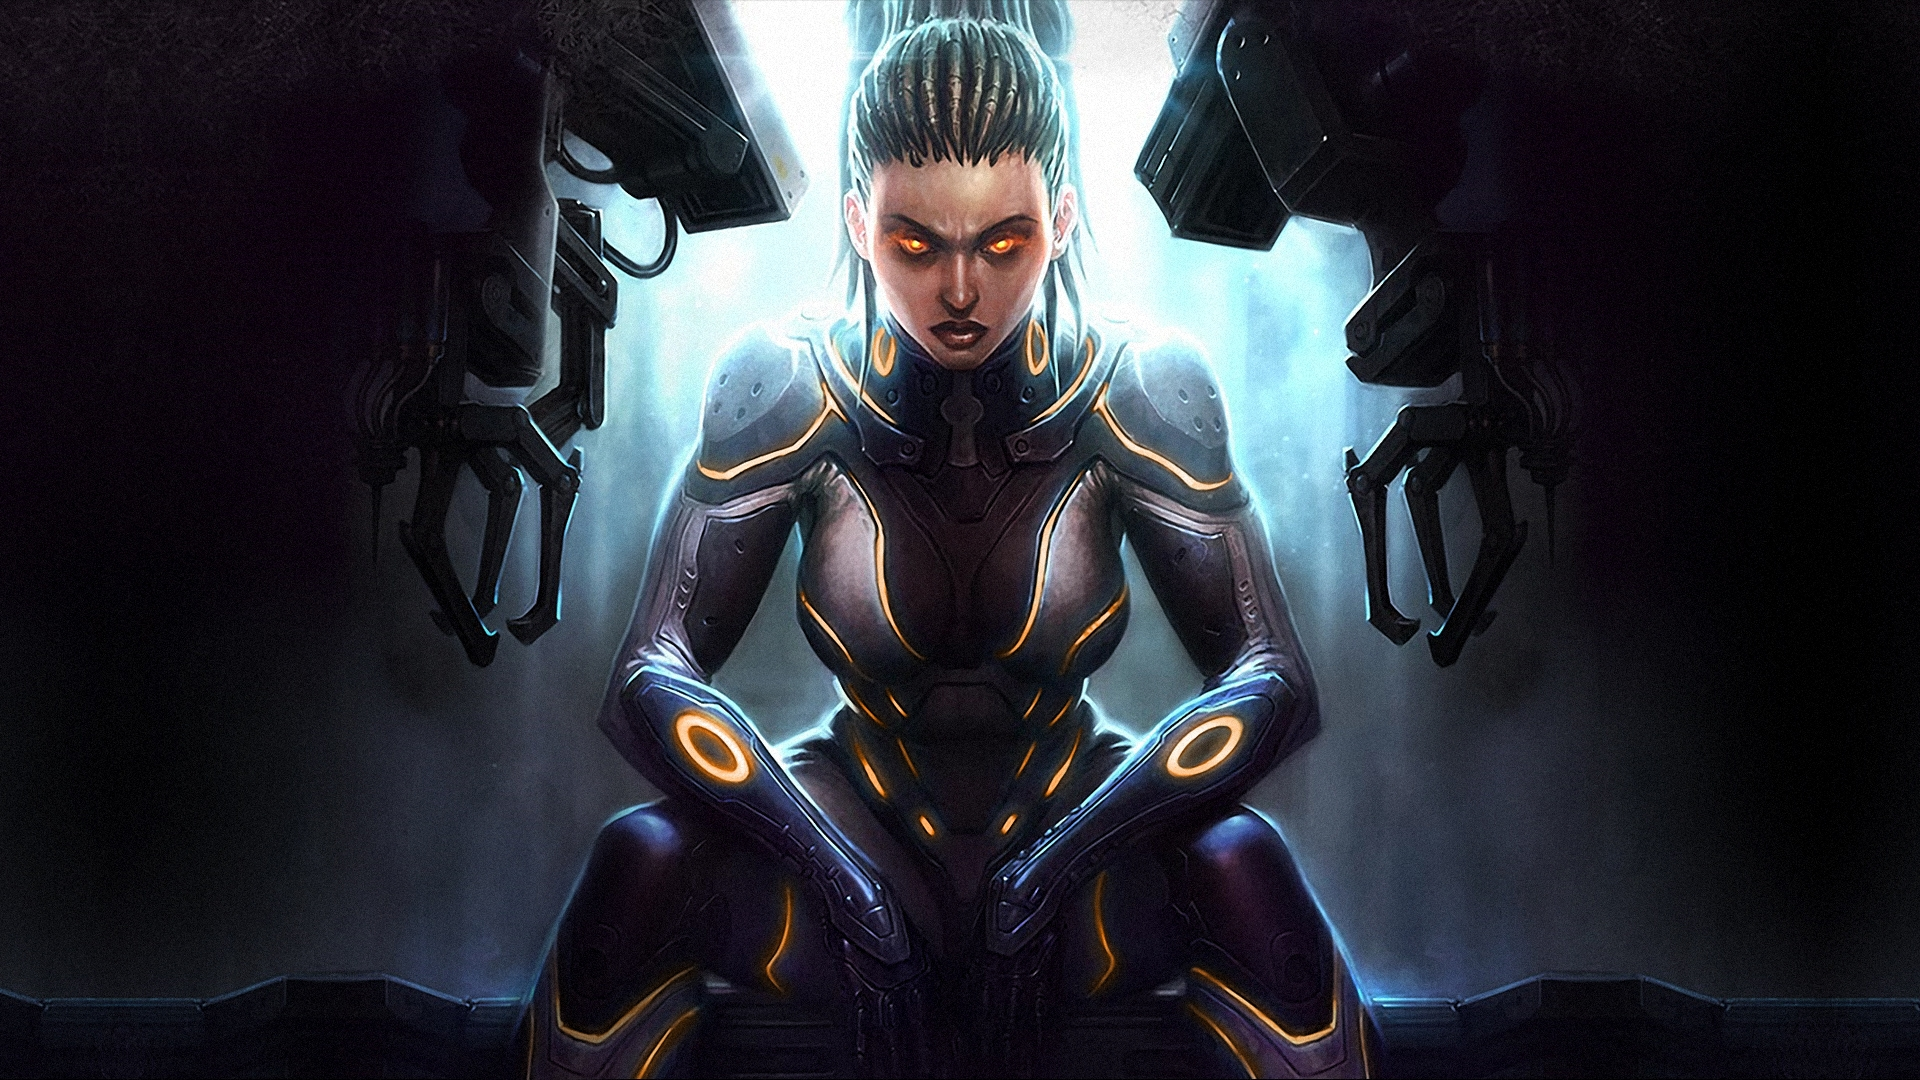 starcraft 2, hots, heart of the swarm, sarah kerrigan